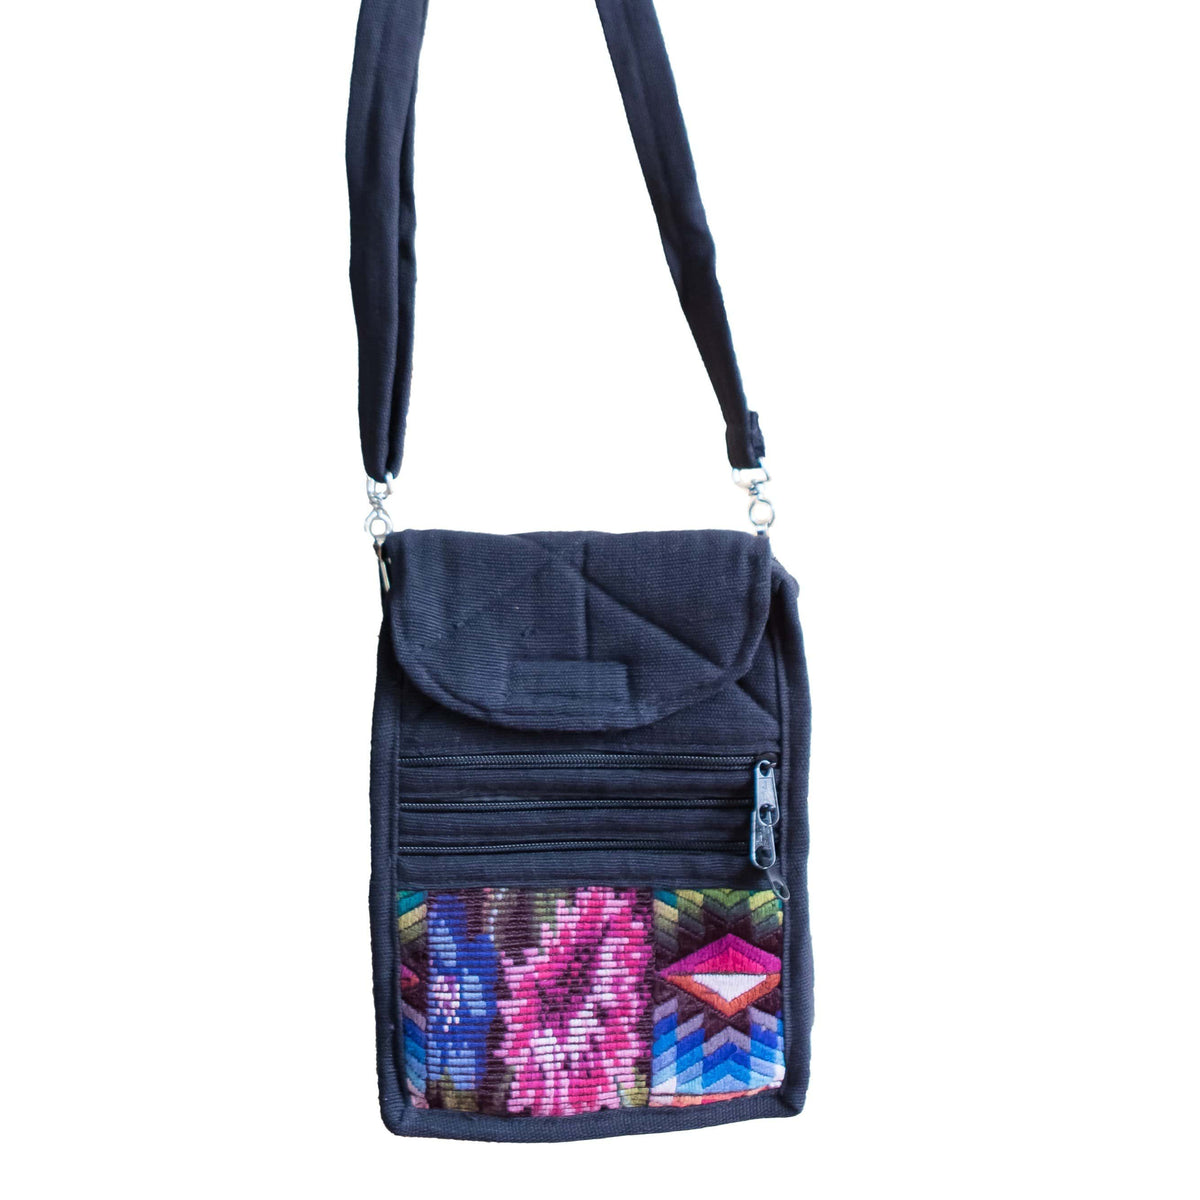 Handmade Fair Trade Shoulder Bag